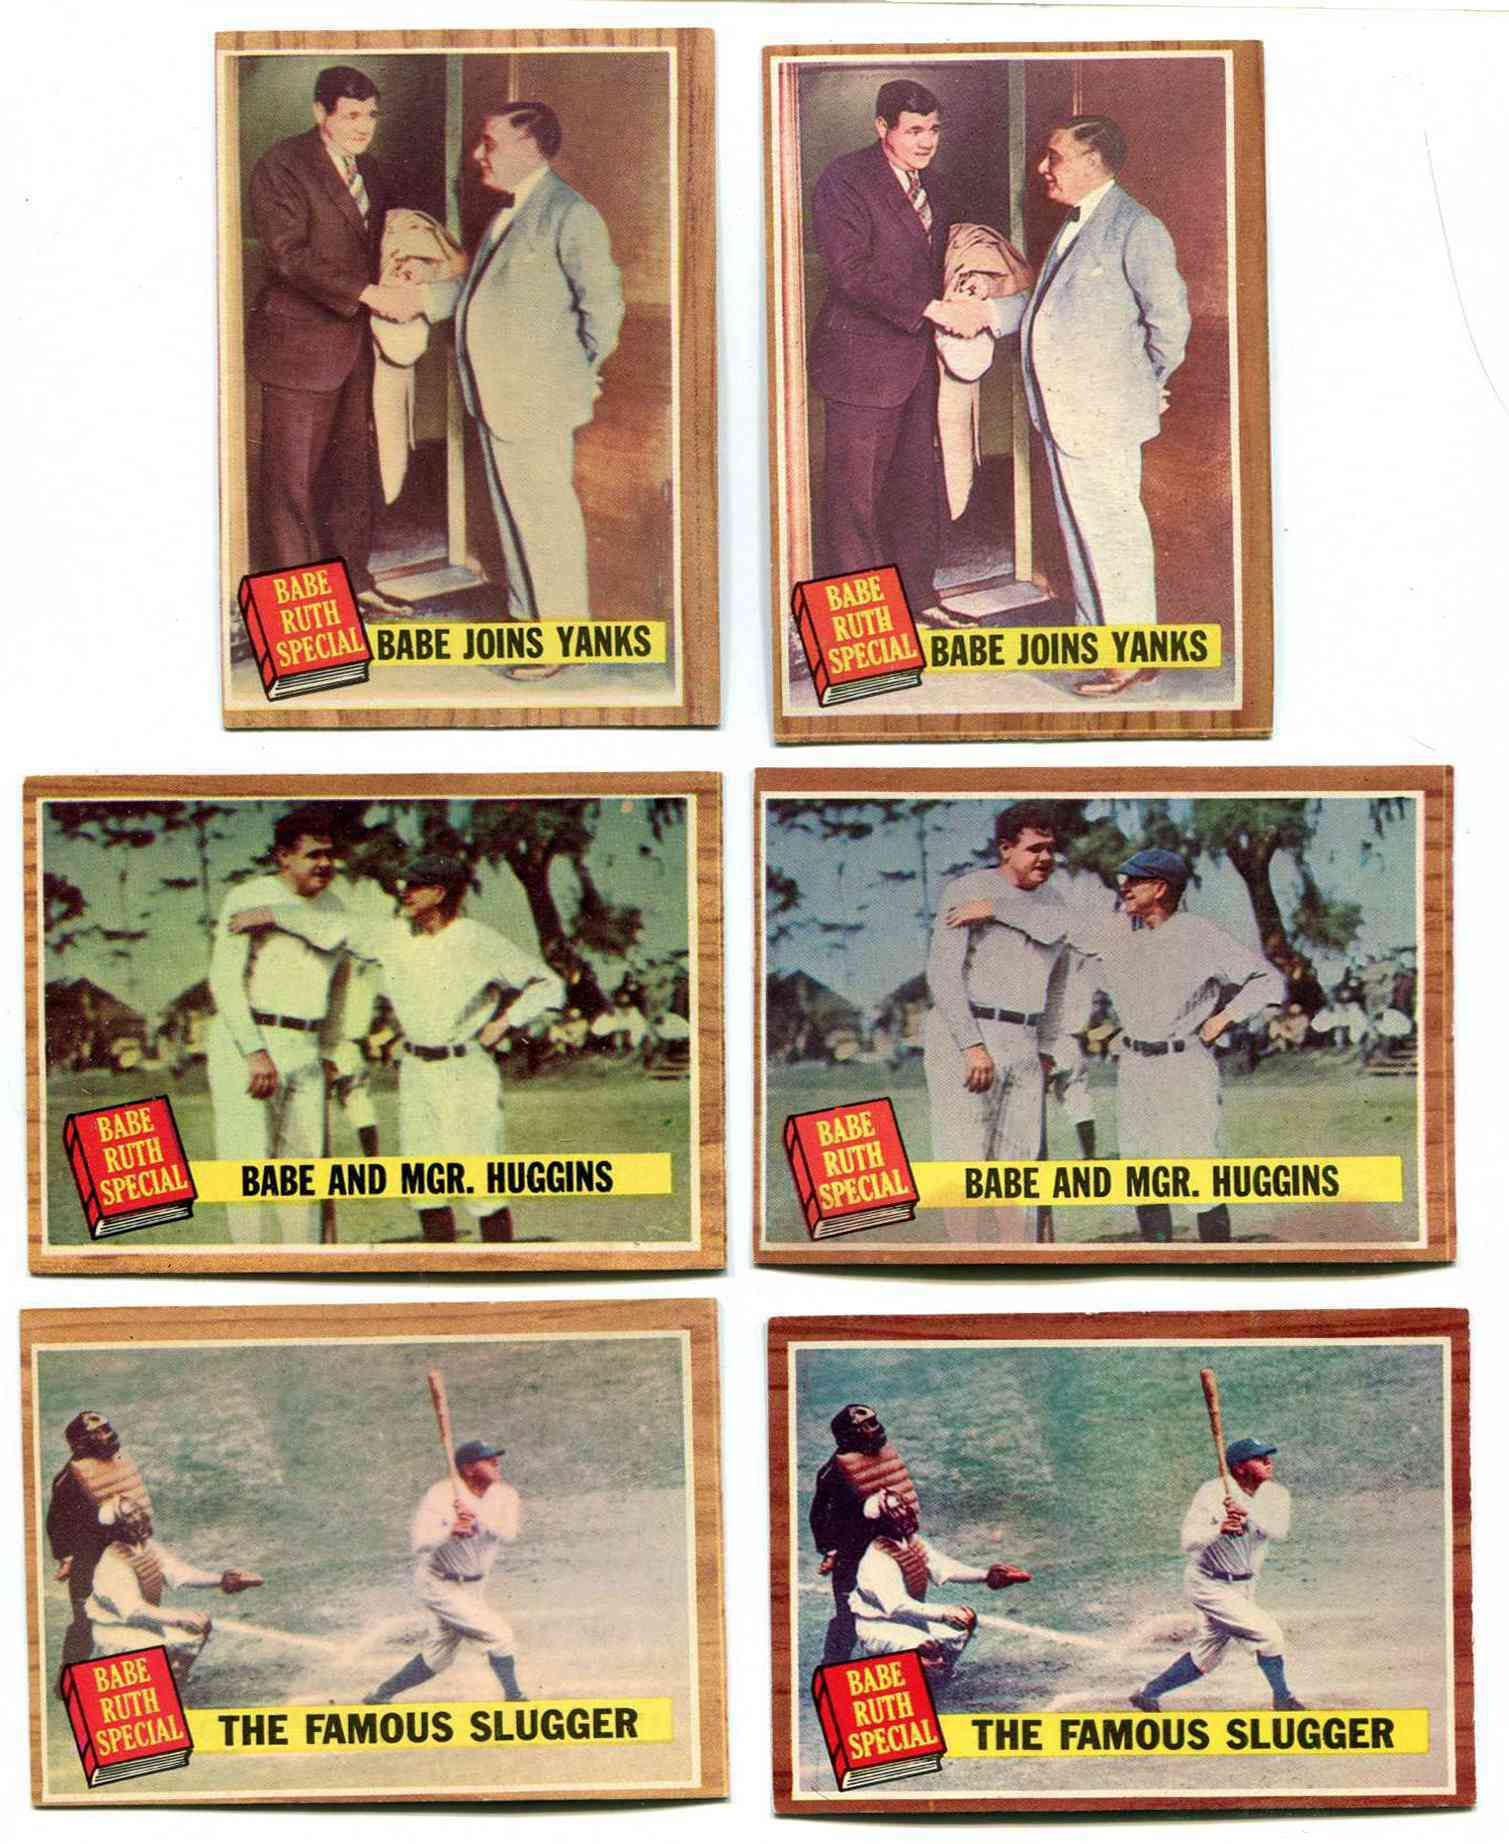 1962 Topps #137 Babe Ruth Special #3 [#x] (Yankees) Baseball cards value